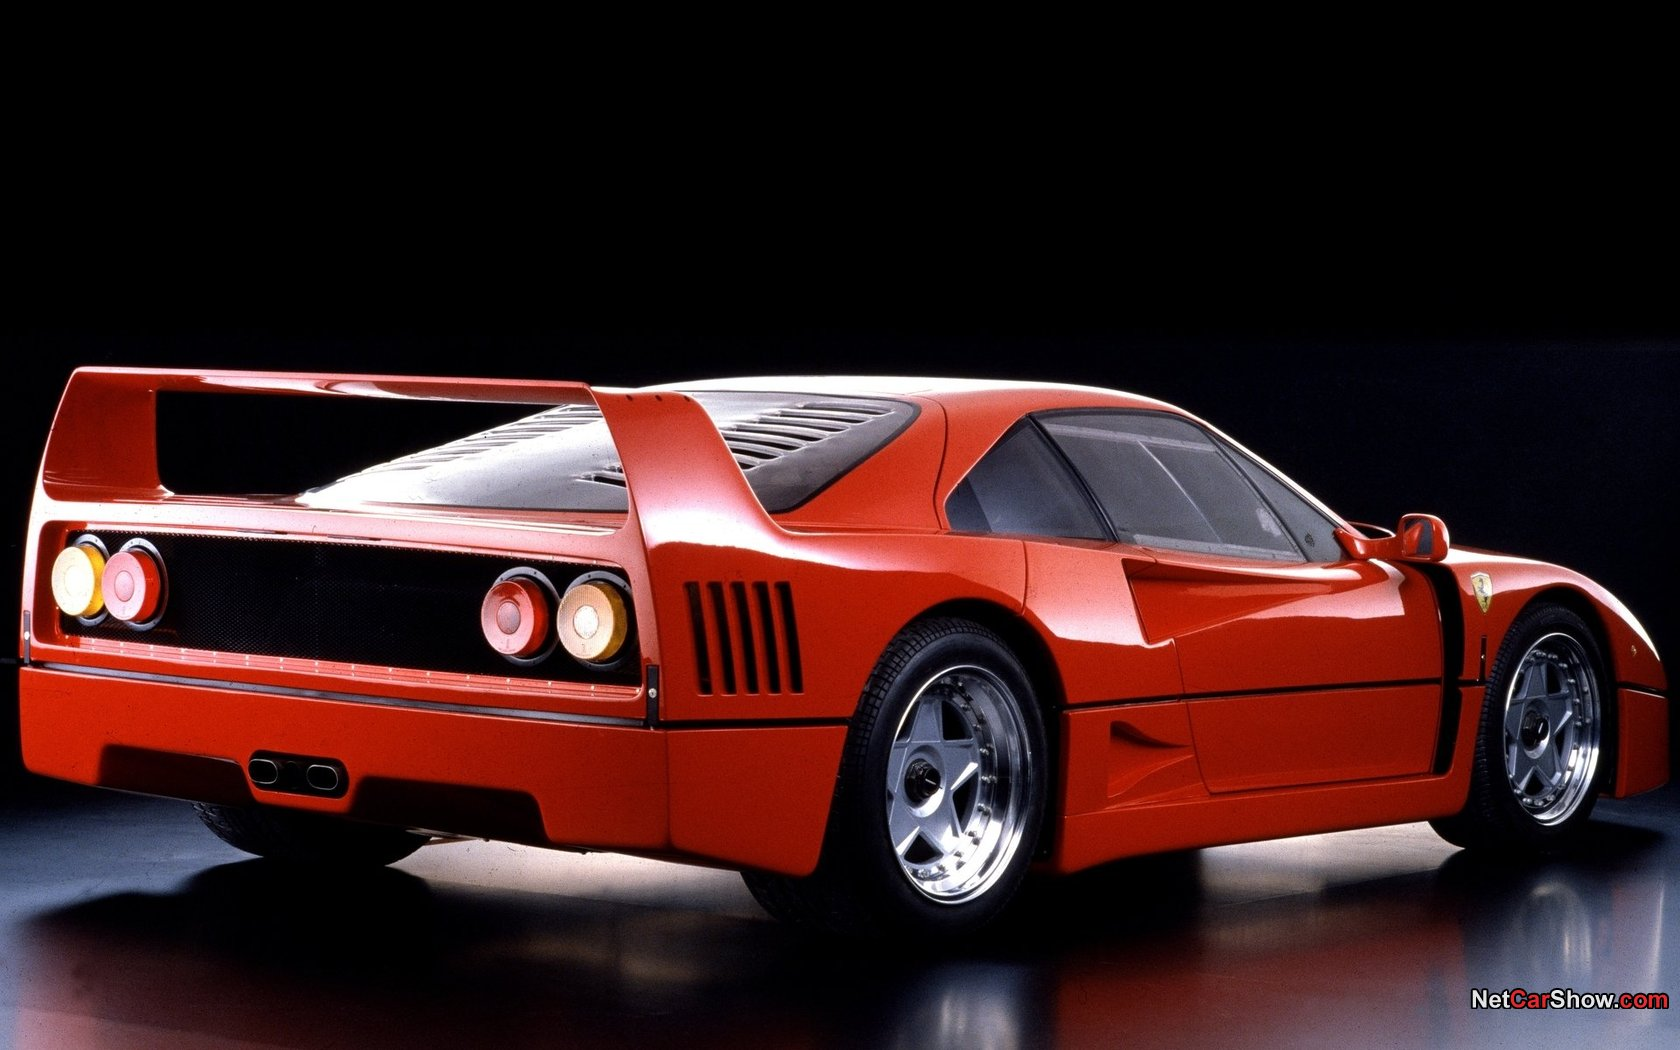 Sure, The Ferrari F40 Was Beaten Five Years Later By The Jaguar XJ220, And  Ferrari Never Retook That Podium, But Thereu0027s Something About The F40 That  Stayed ...